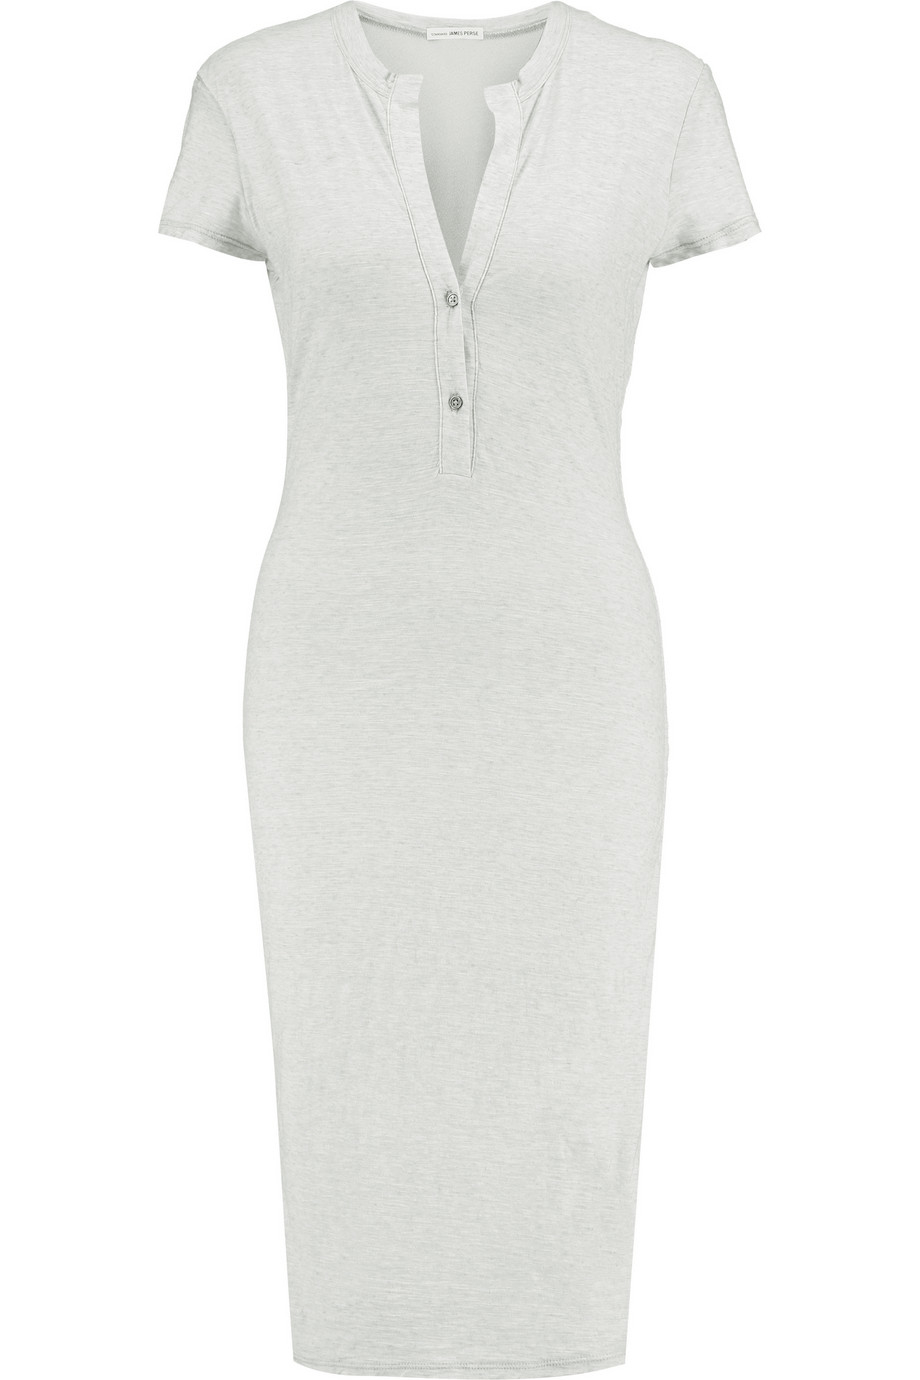 Lyst james perse henley slub cotton midi dress in white for James perse henley shirt